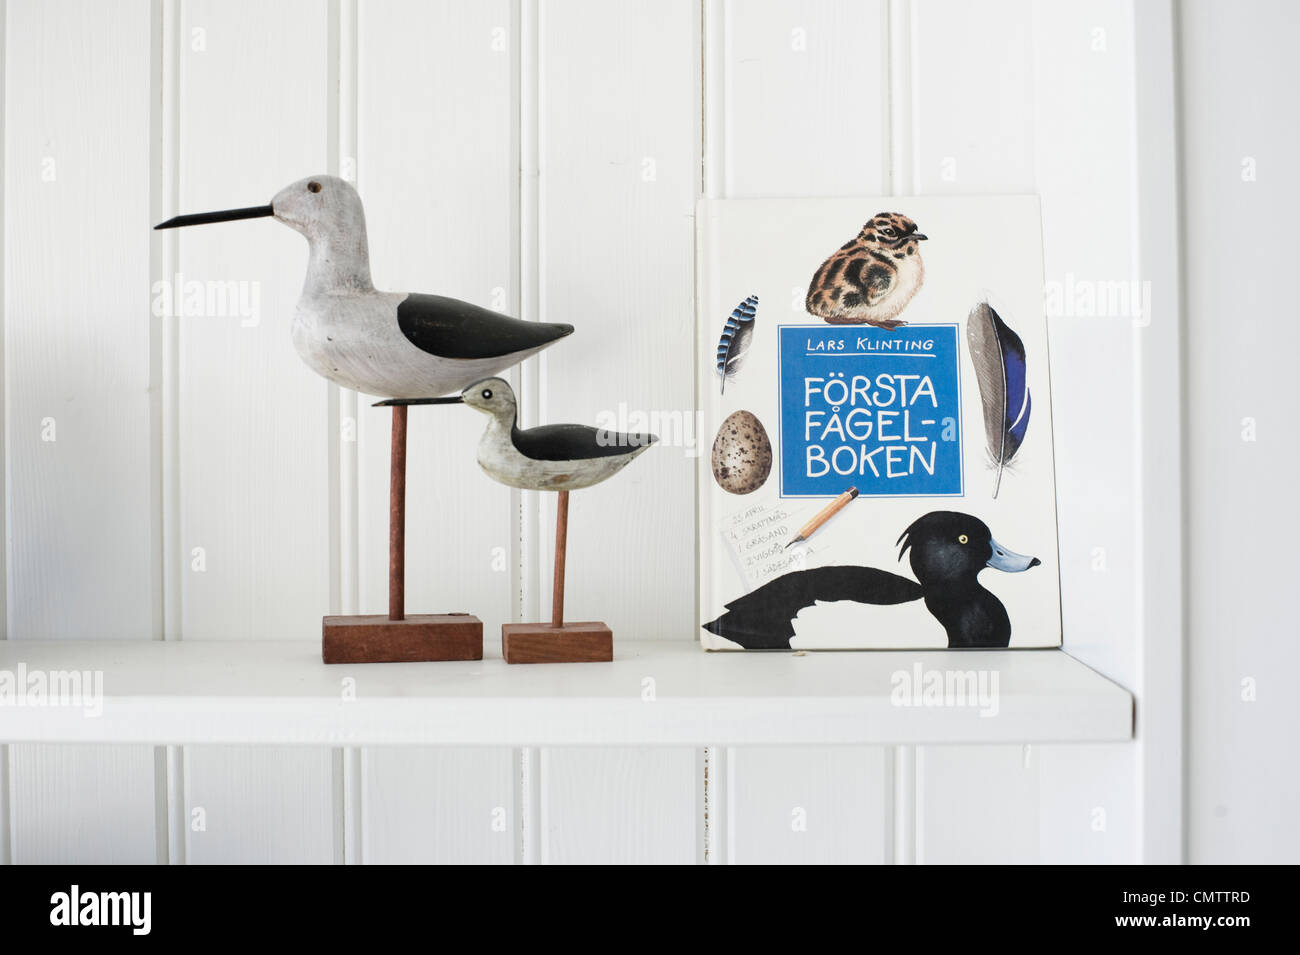 Close-up of artificial birds and book on shelf - Stock Image